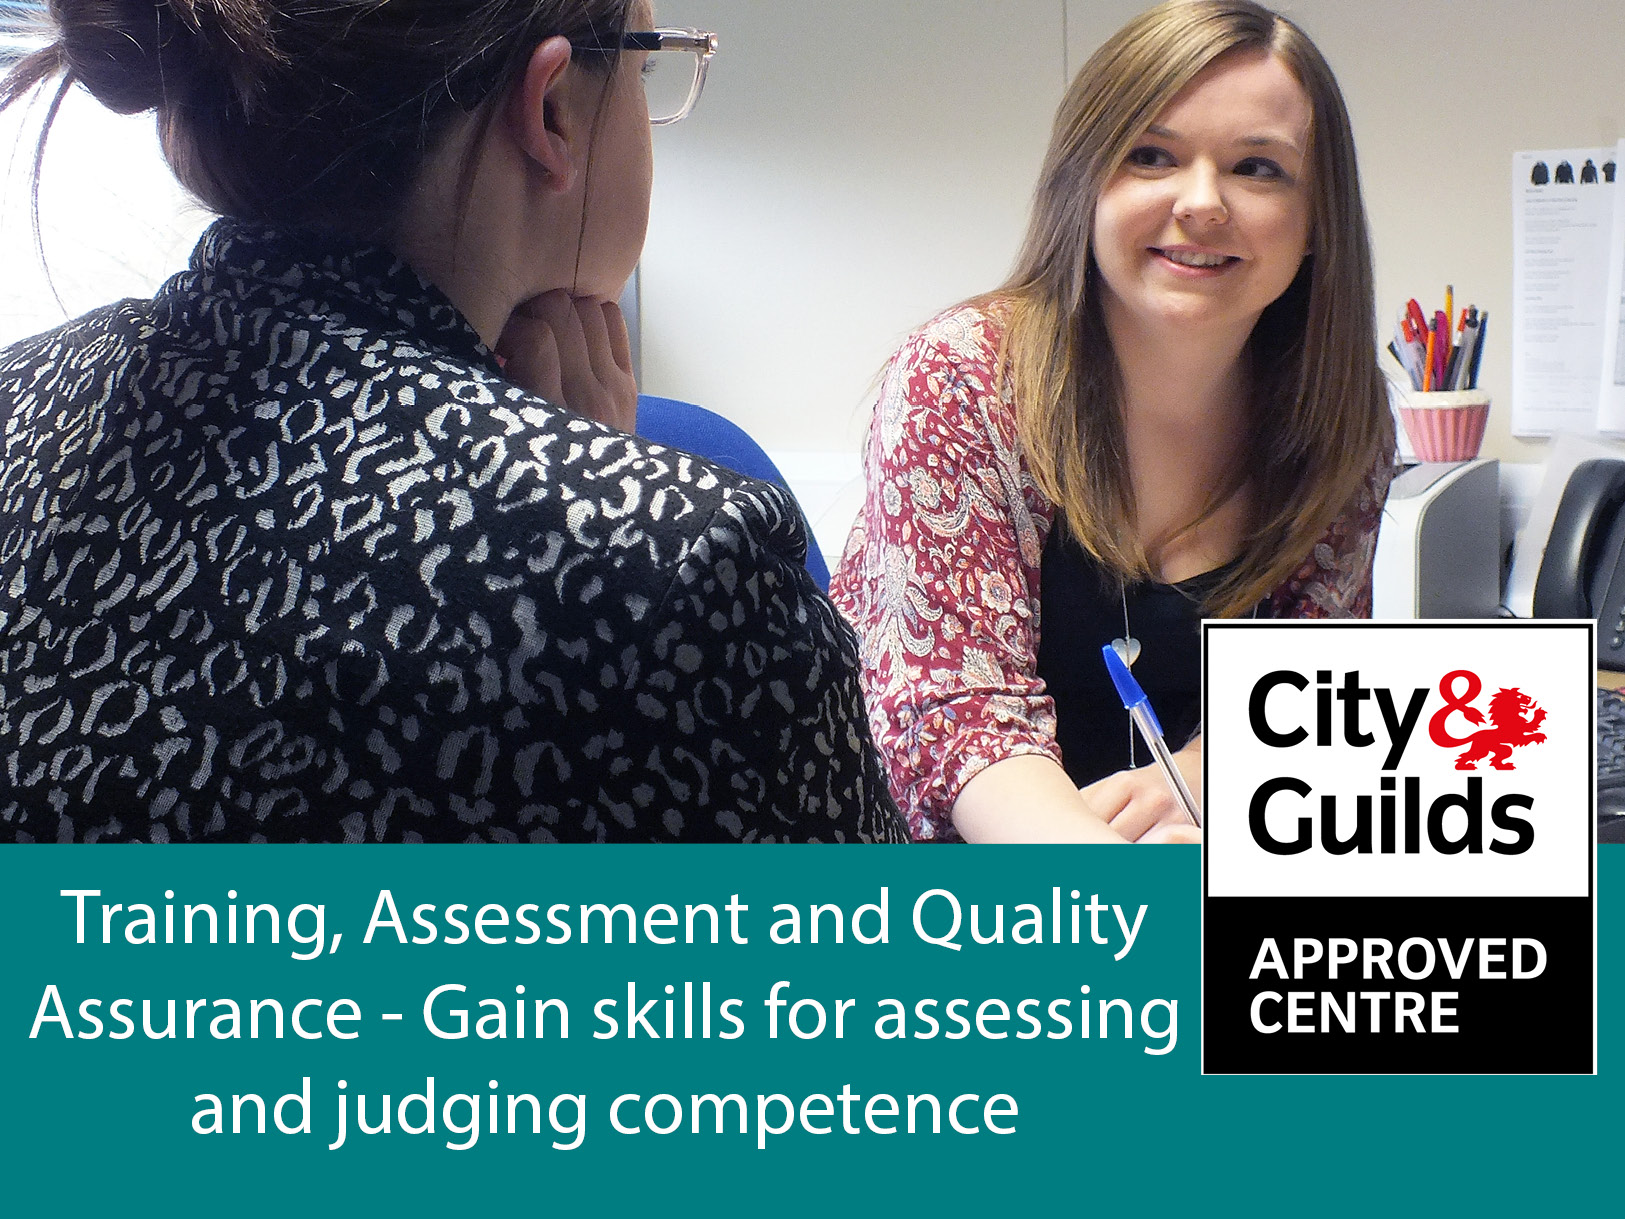 TAQA Qualifications certified by City & Guilds